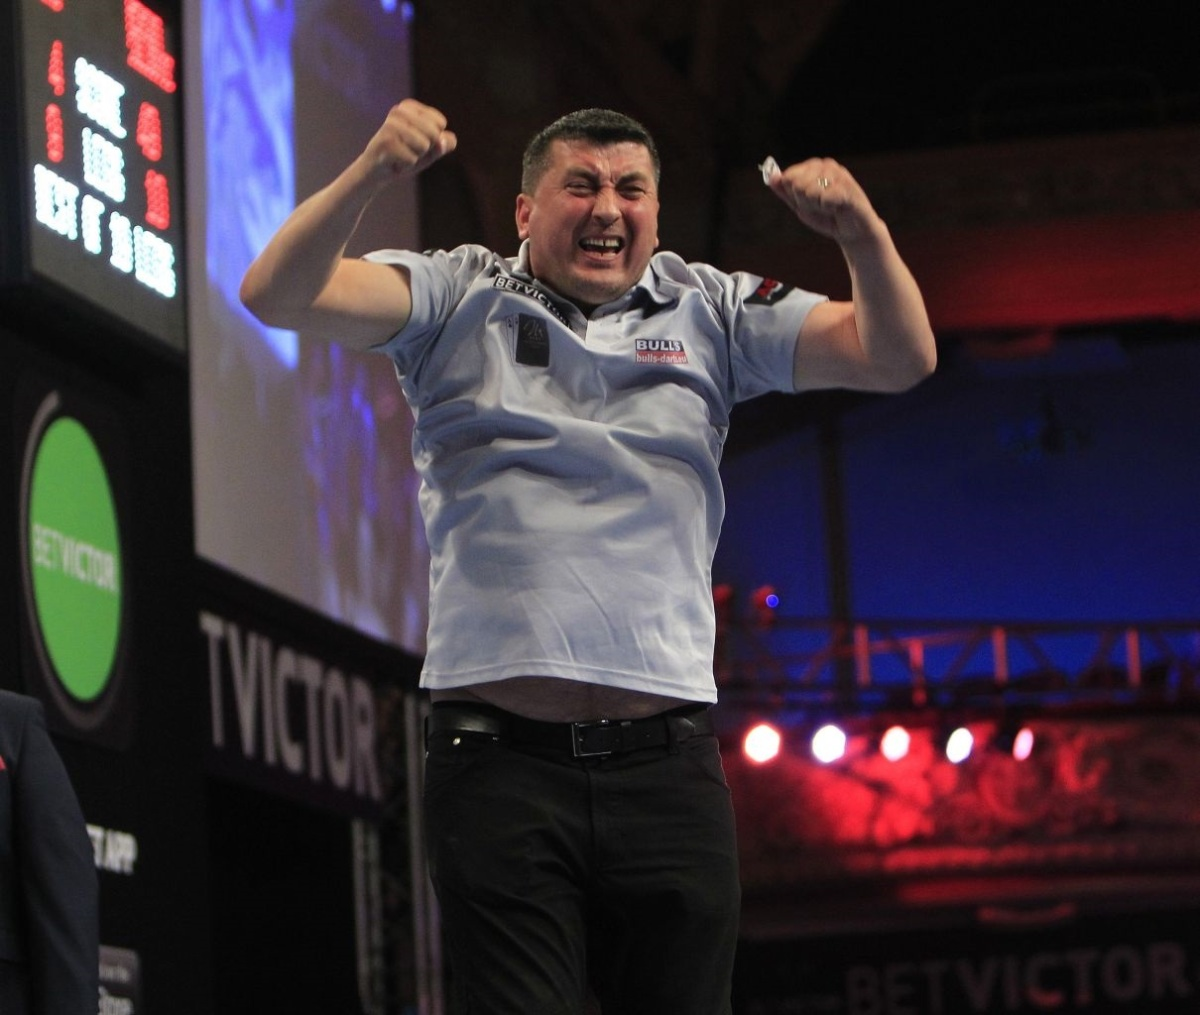 Dave McNally: A contrast of throwing styles on the oche